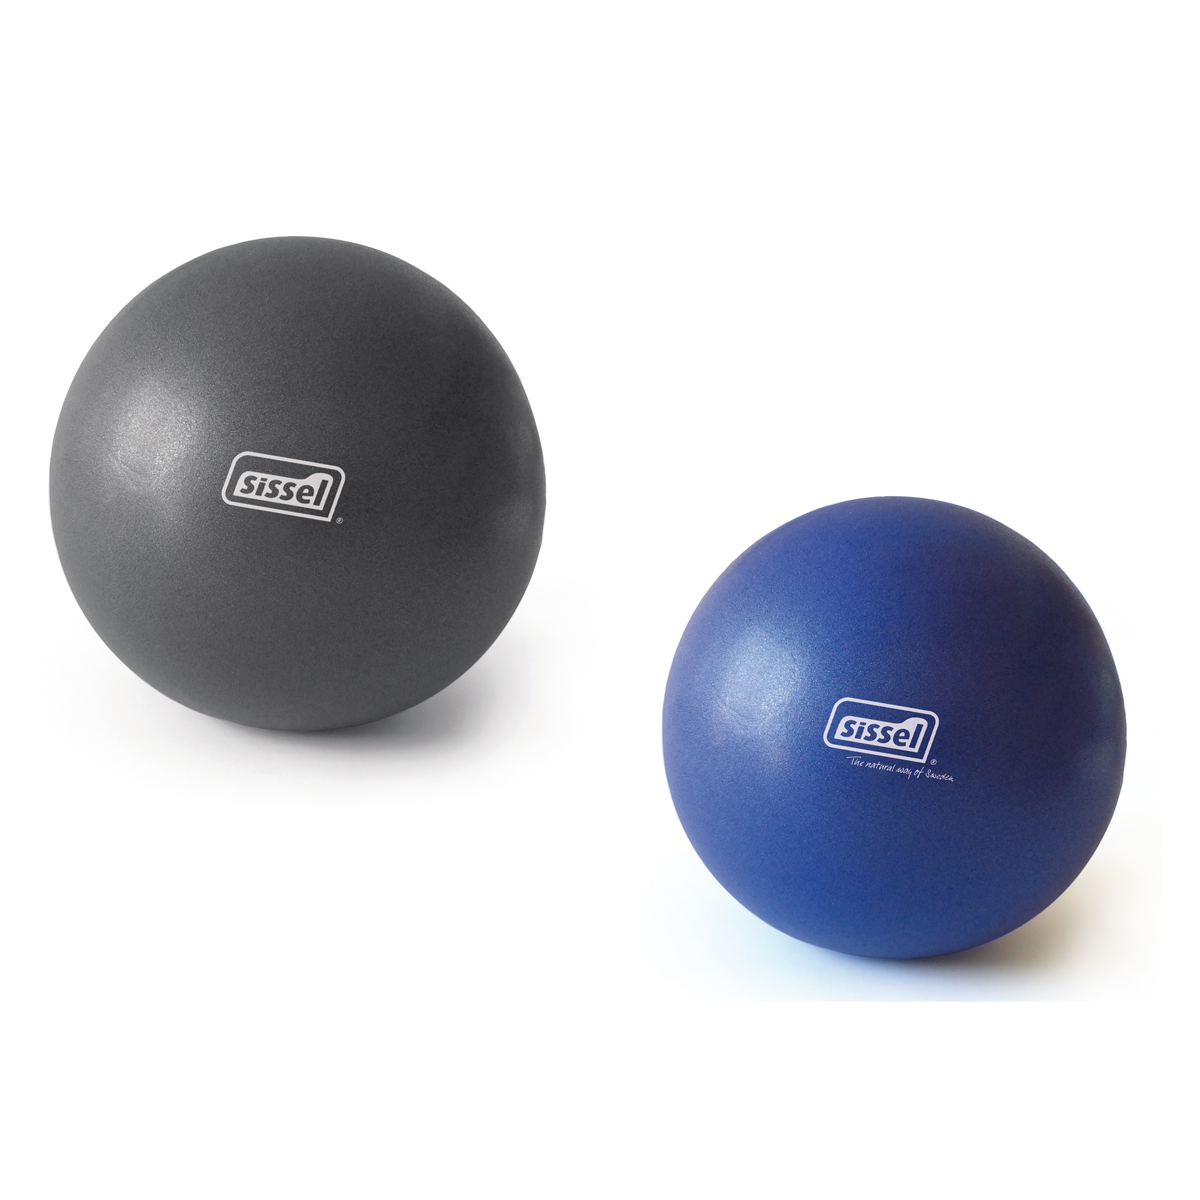 Soffice Palla versartile Pilates Soft Ball SISSEL